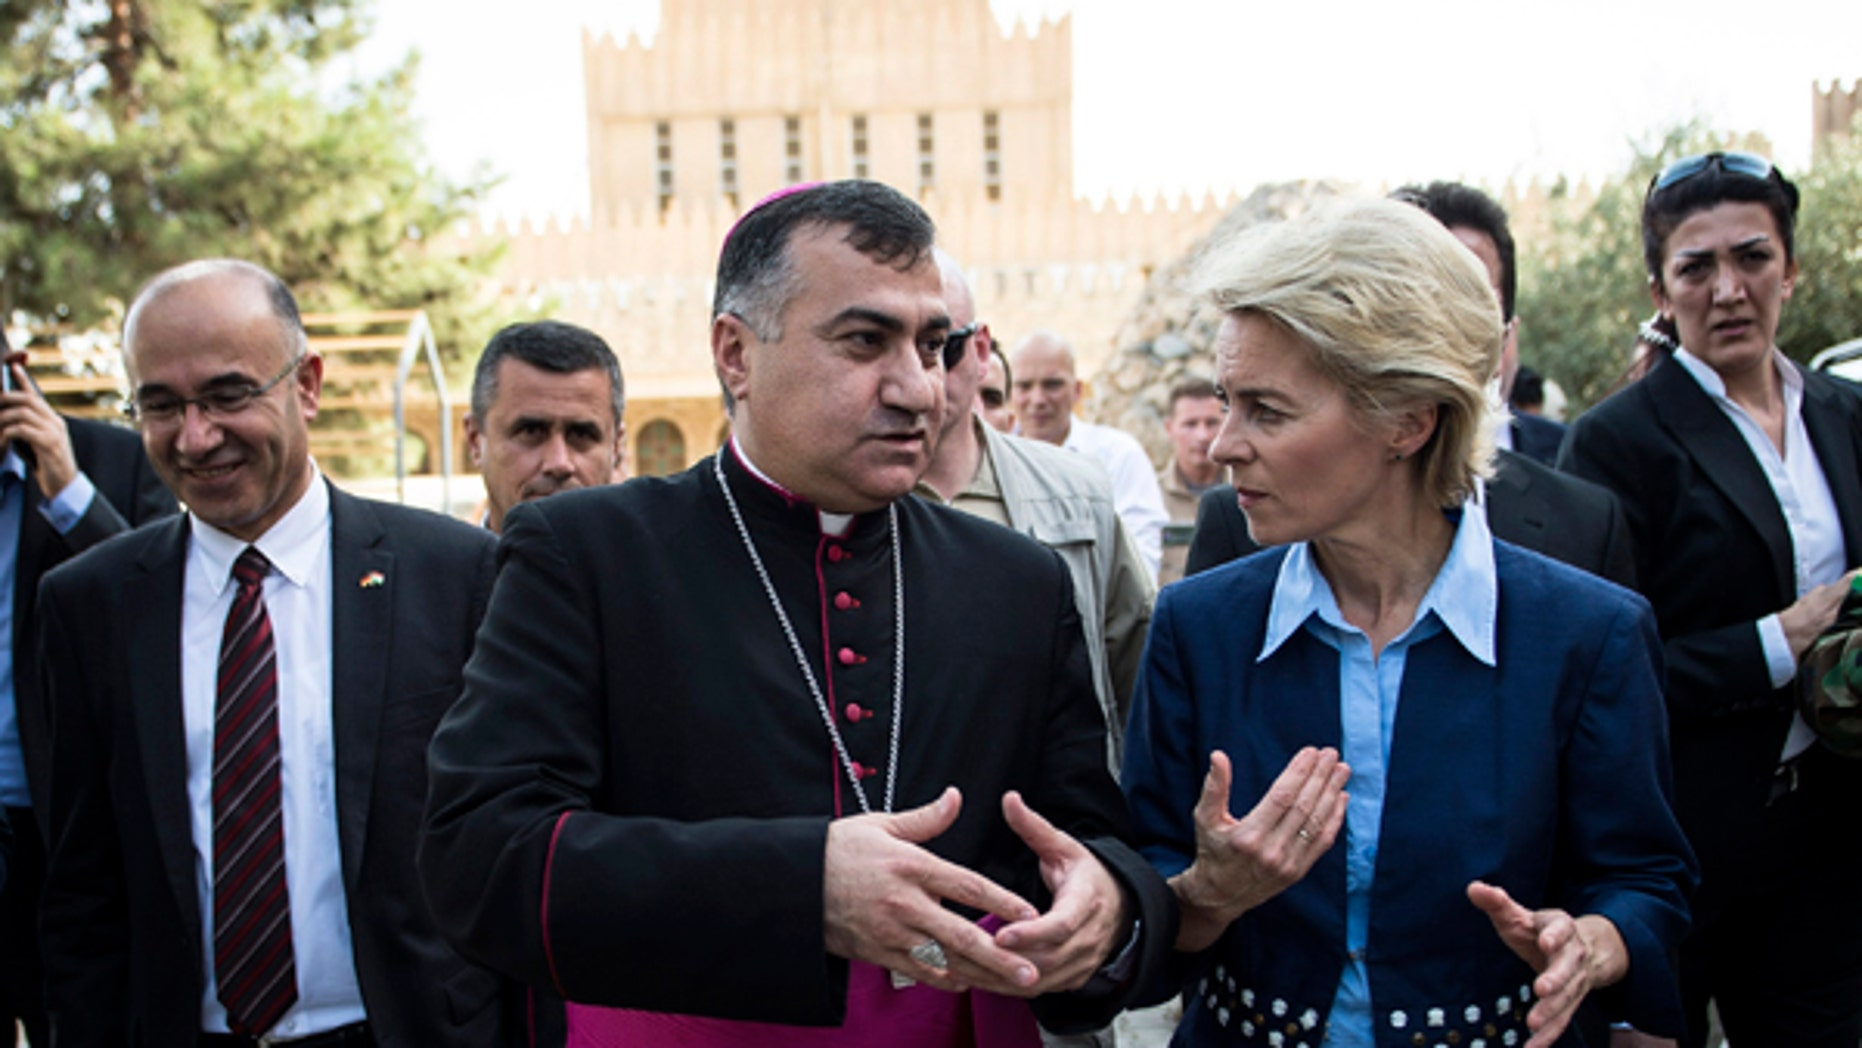 Iraqi Archbishop Bashar Warda (C) the Chaldean Archbishop of Arbil, says that he is hopeful that the Trump Administration will do more to provide assistance to Christians and other religious minorities in Northern Iraq.